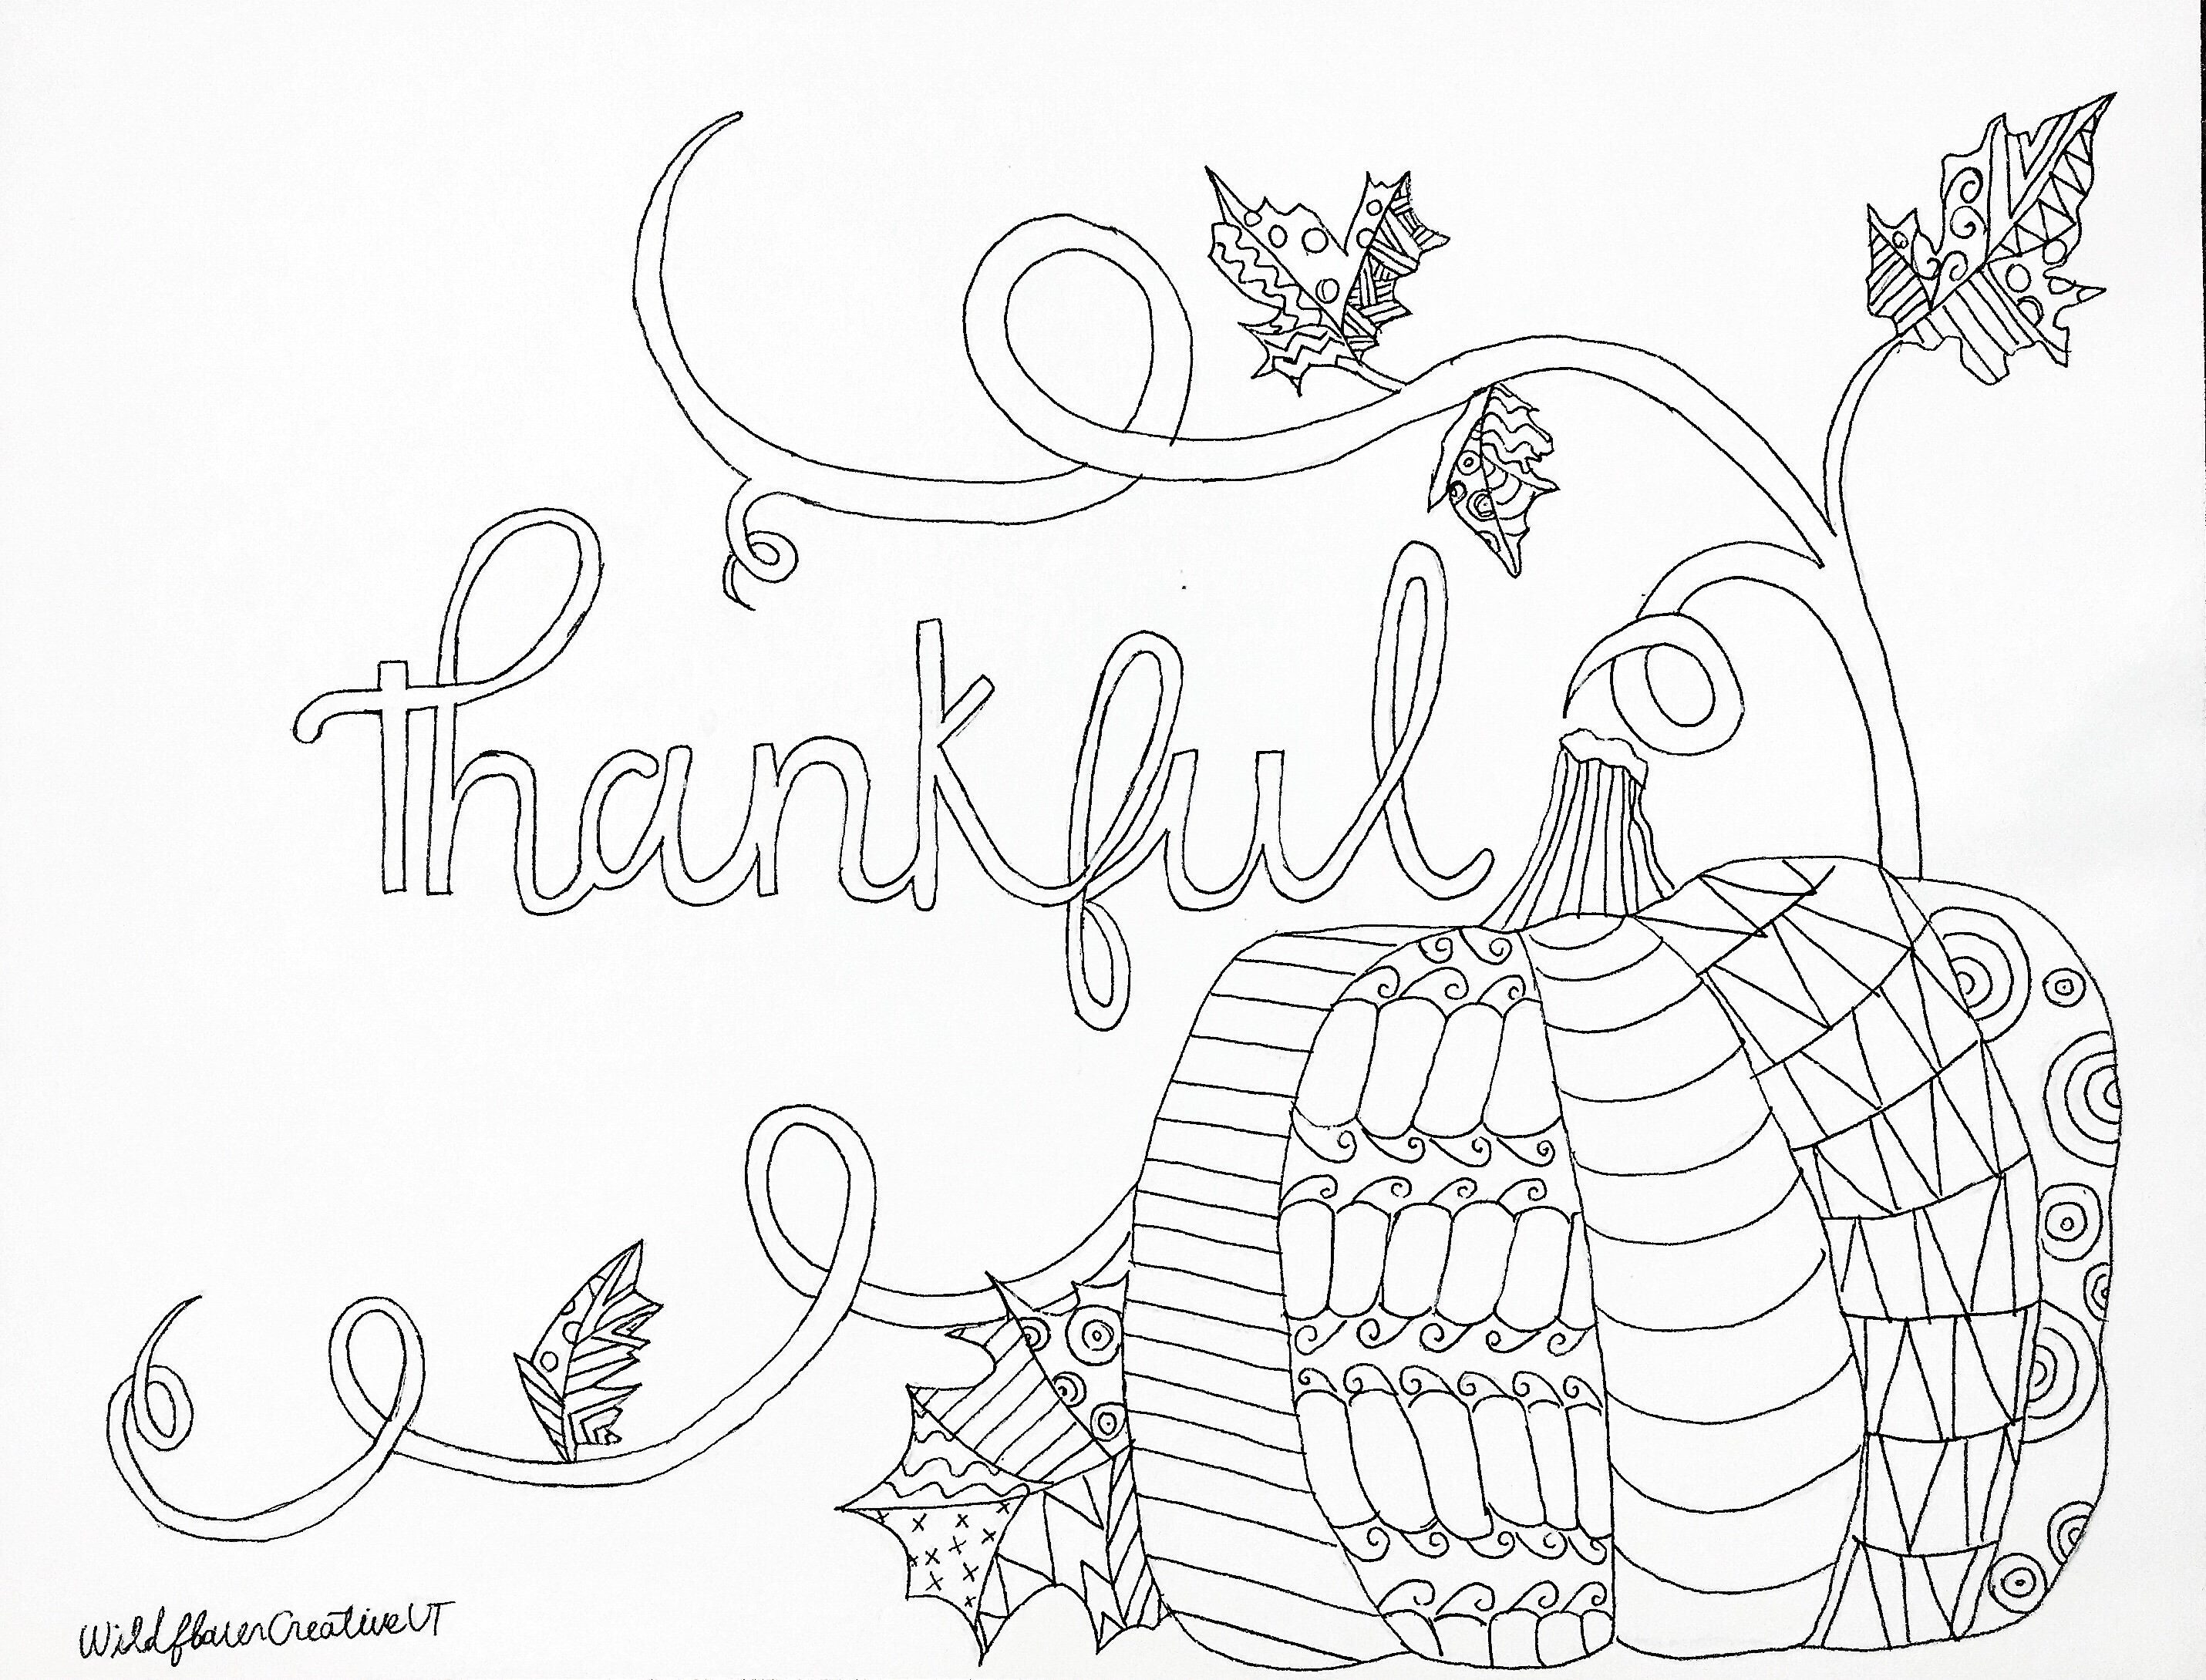 Excited To Share This Item From My Etsy Shop Thanksgiving Print Thanksgiving Digital Down Thanksgiving Coloring Pages Coloring Pages Coloring Pages For Kids [ 2179 x 2861 Pixel ]